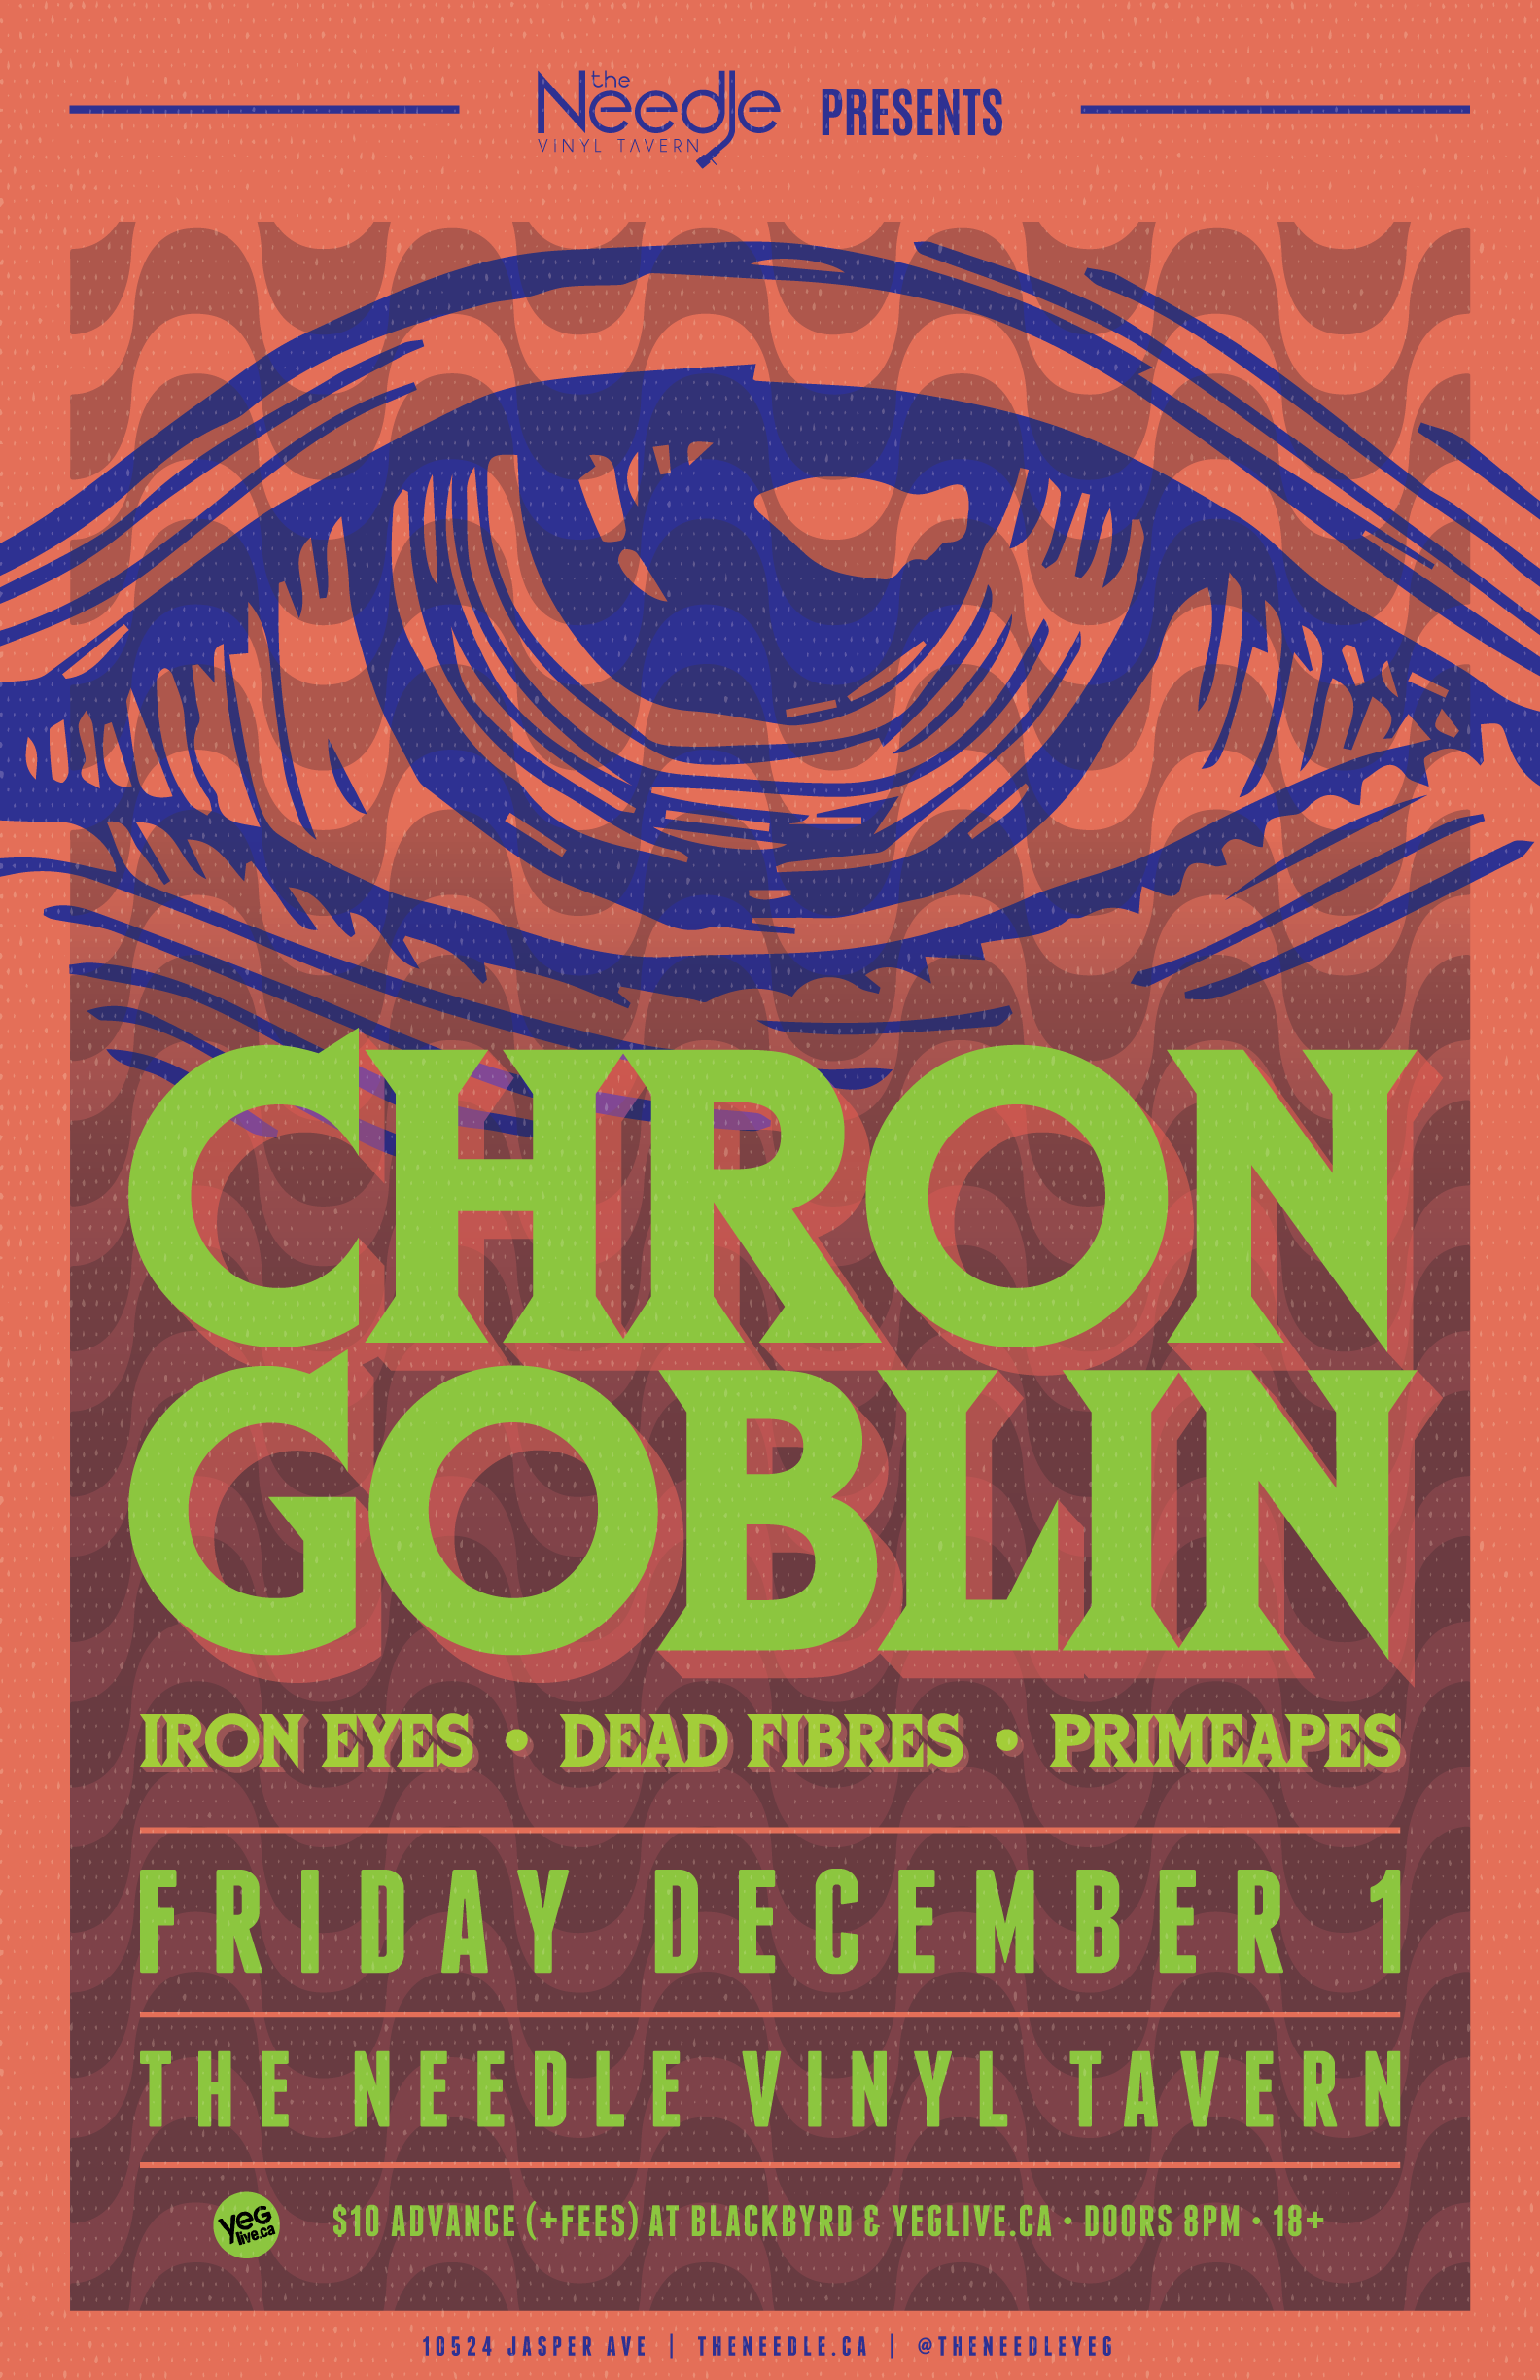 NVT-Dec1-ChronGoblin-PosterSubmission.png